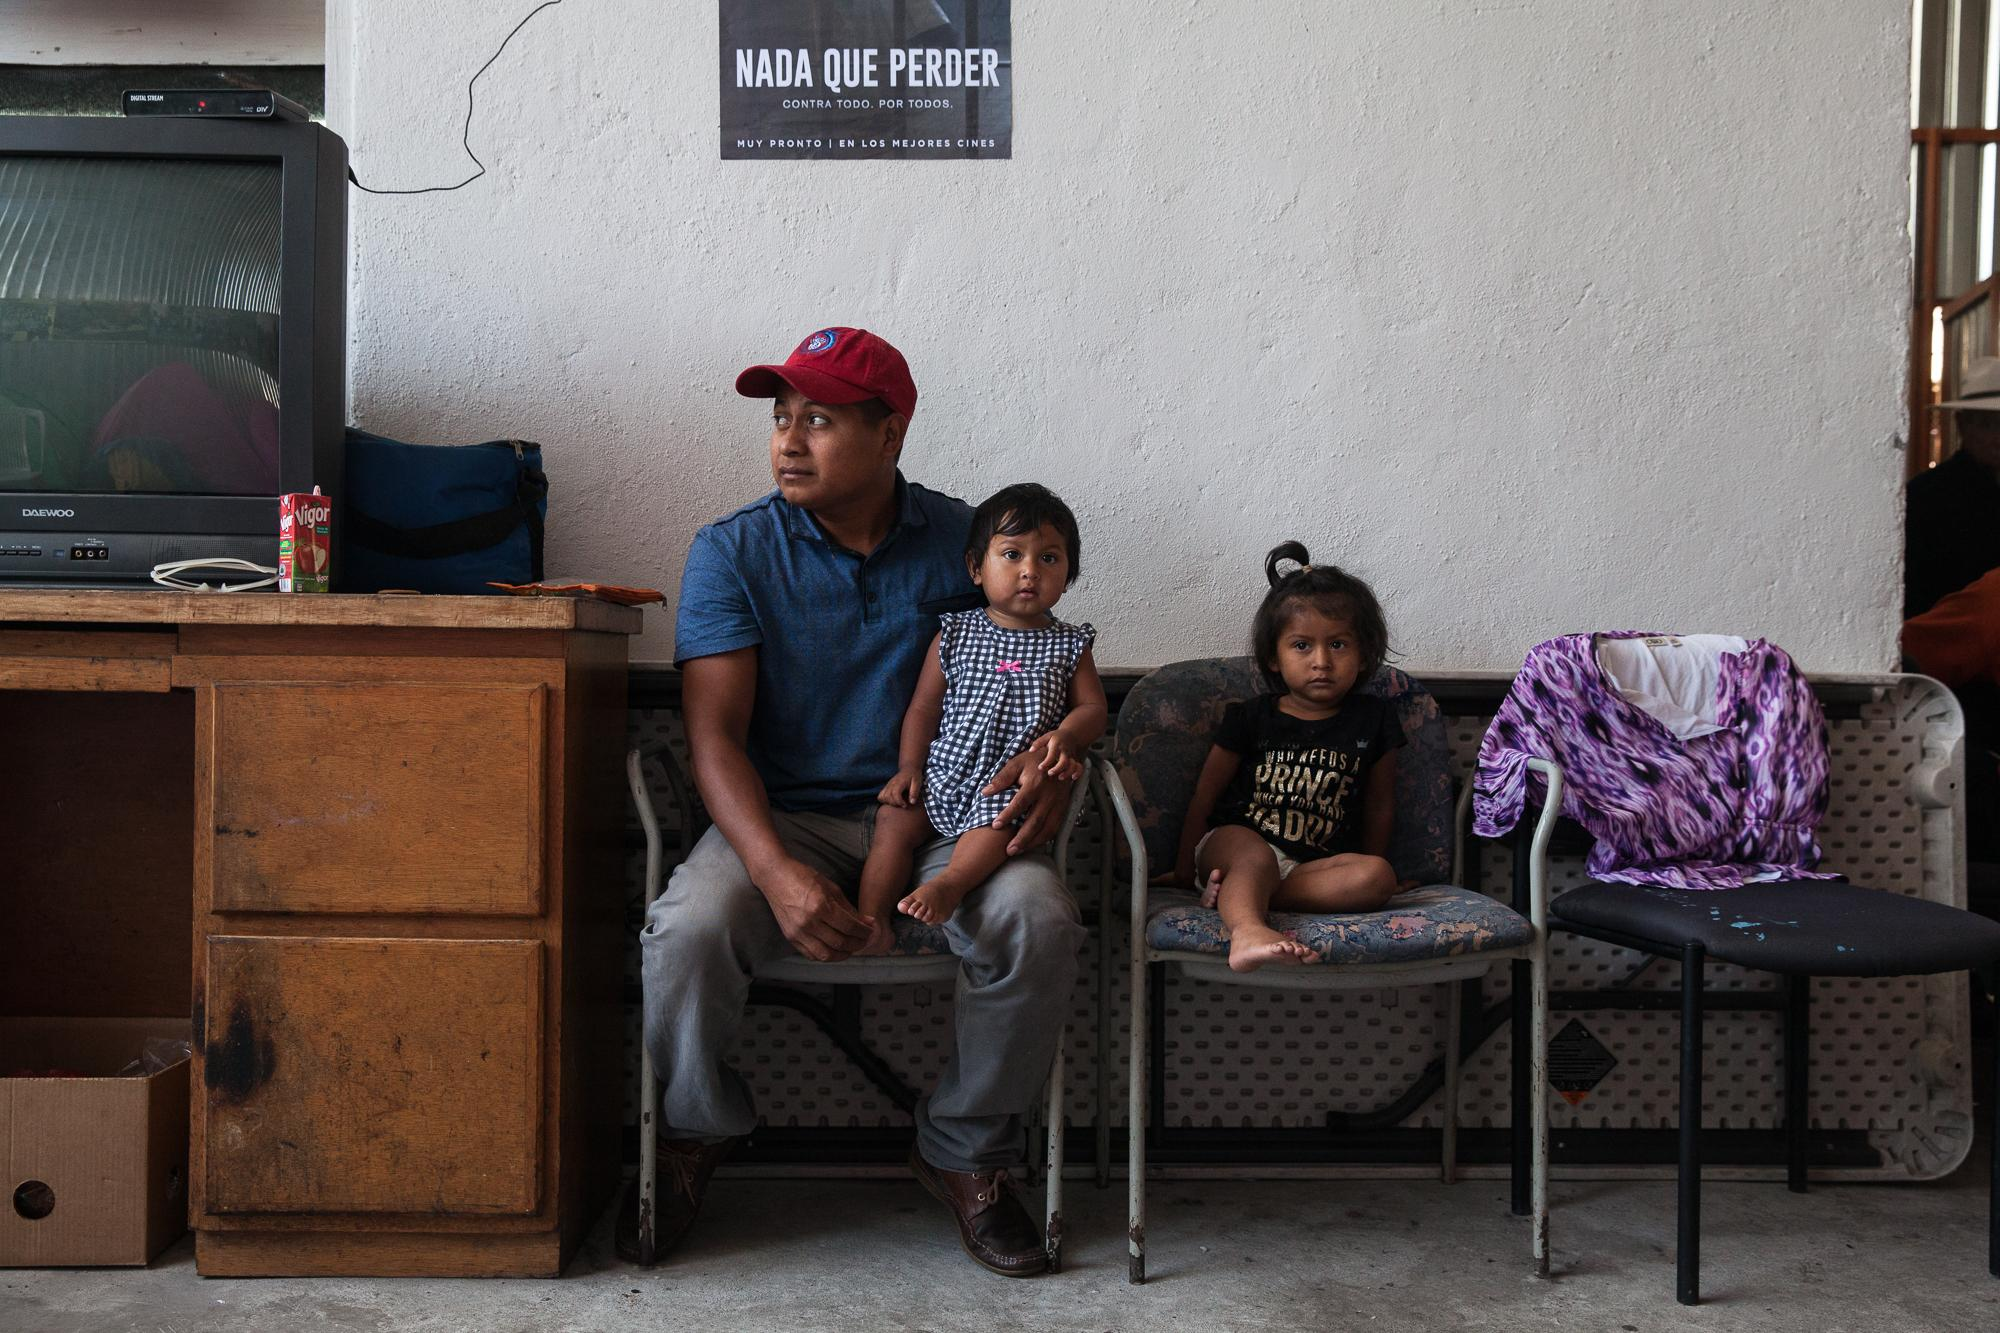 After sleeping their first night in a tent at Juventud 2000 shelter in Tijuana, MX, a family sits near the entrance of the shelter on April 25, 2018.